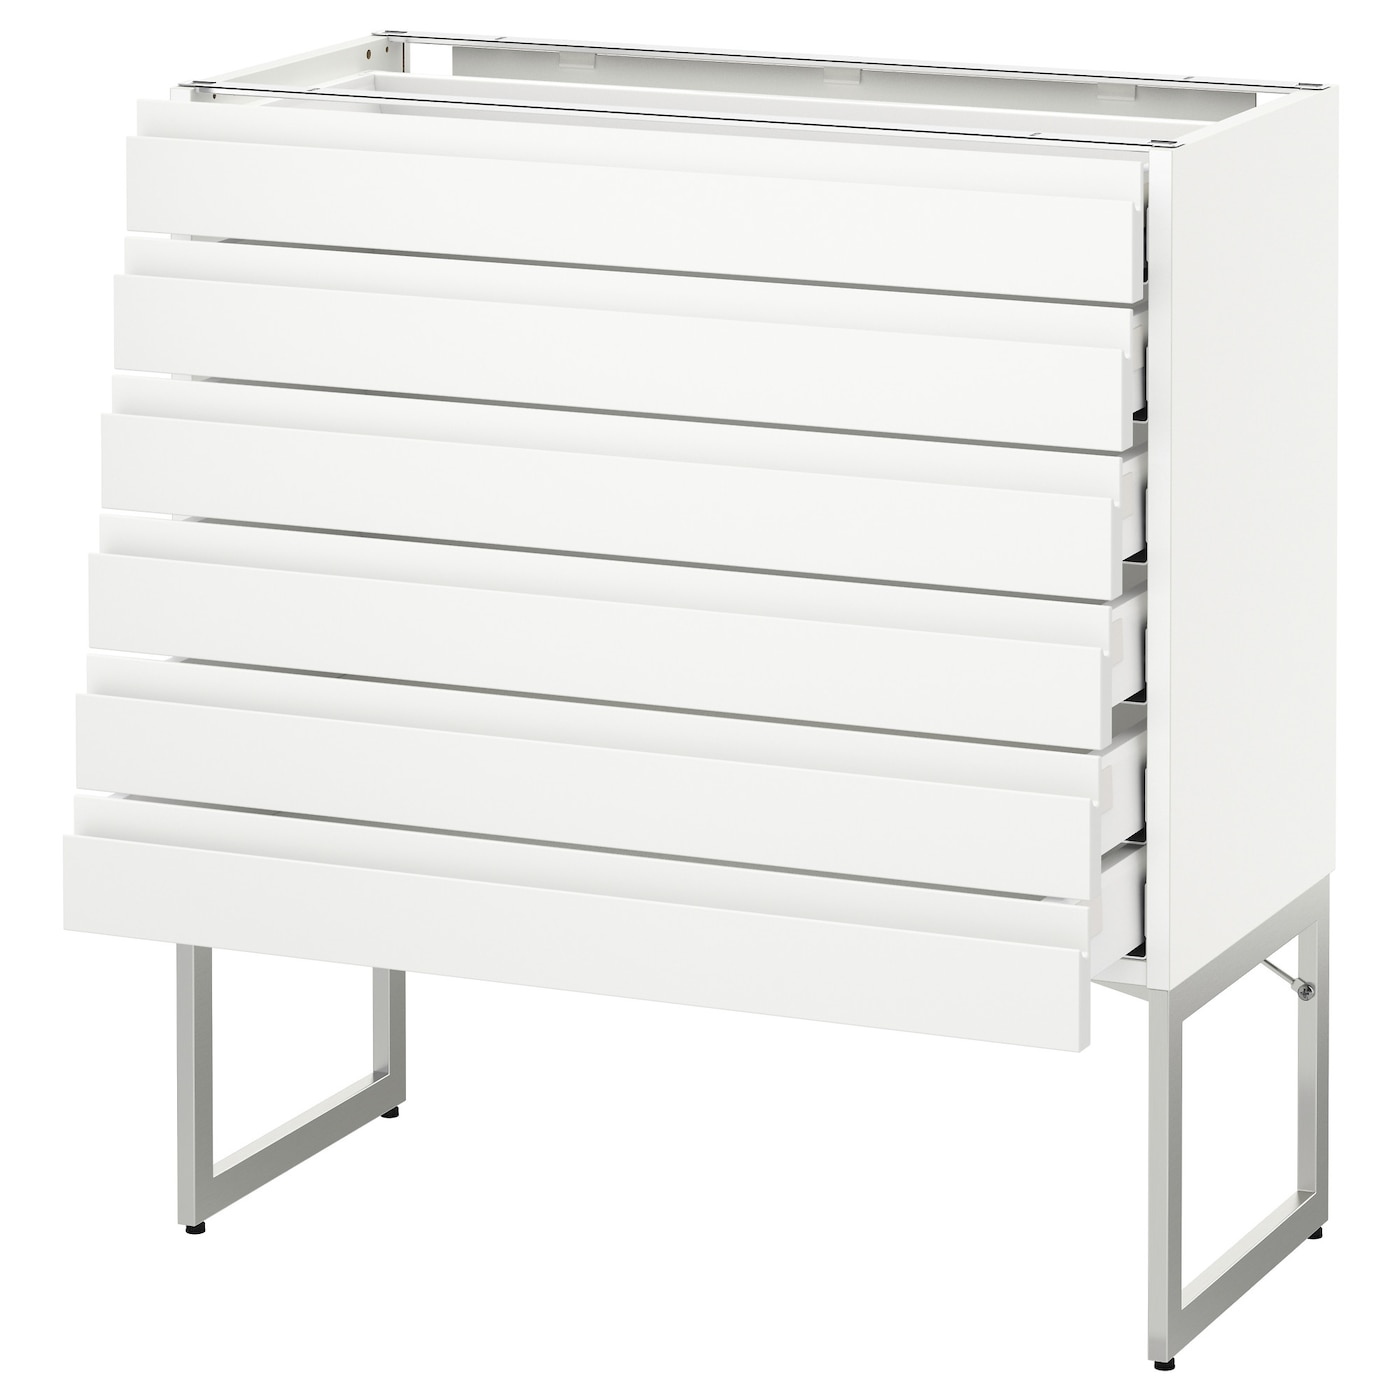 Metod Maximera Base Cabinet 6 Fronts 6 Low Drawers White Voxtorp White 80x37x60 Cm Ikea